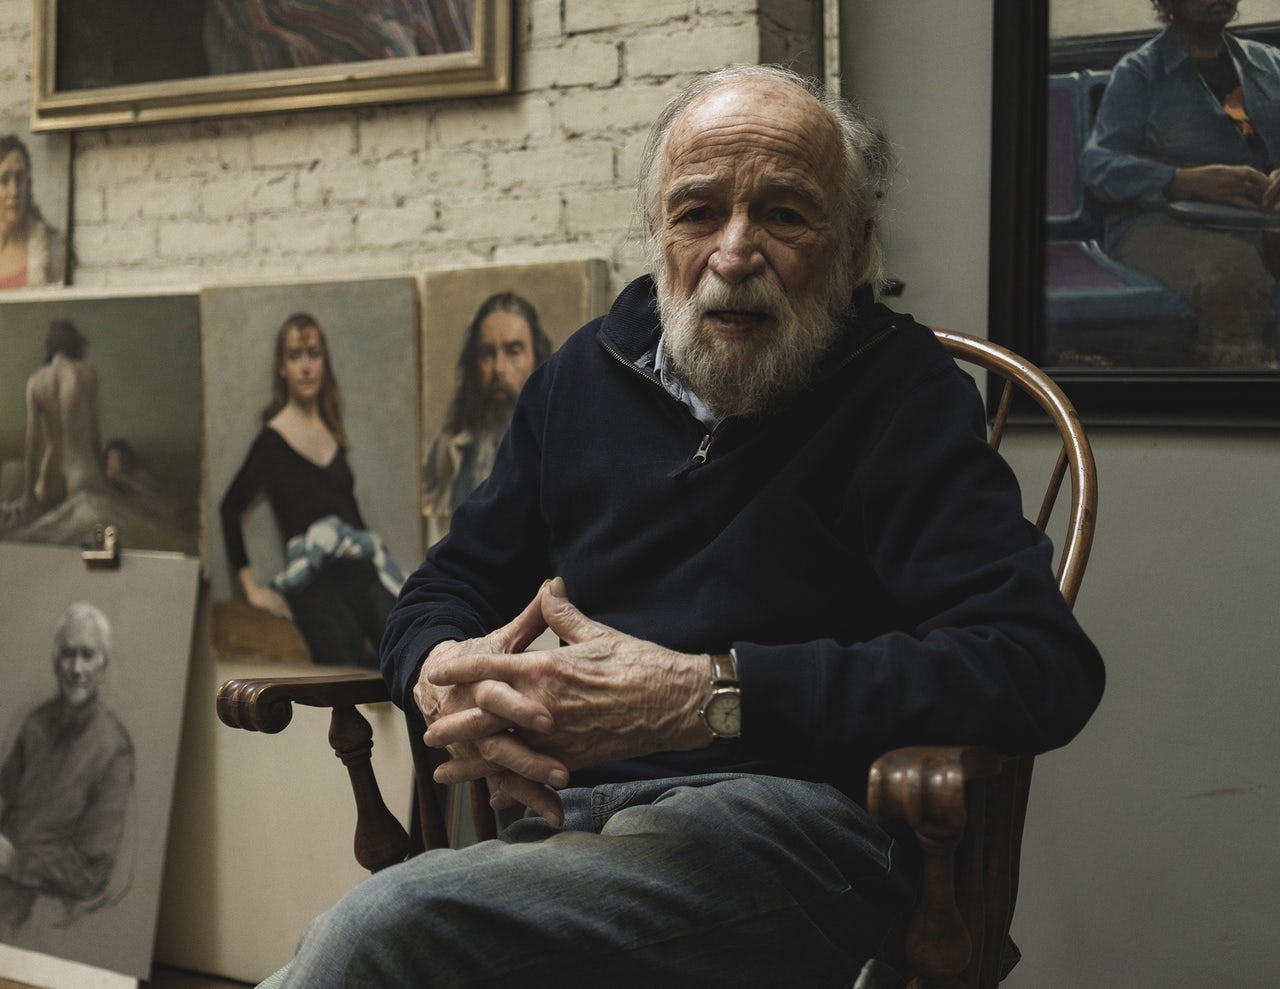 Burton Silverman, photographed in his studio in 2018.